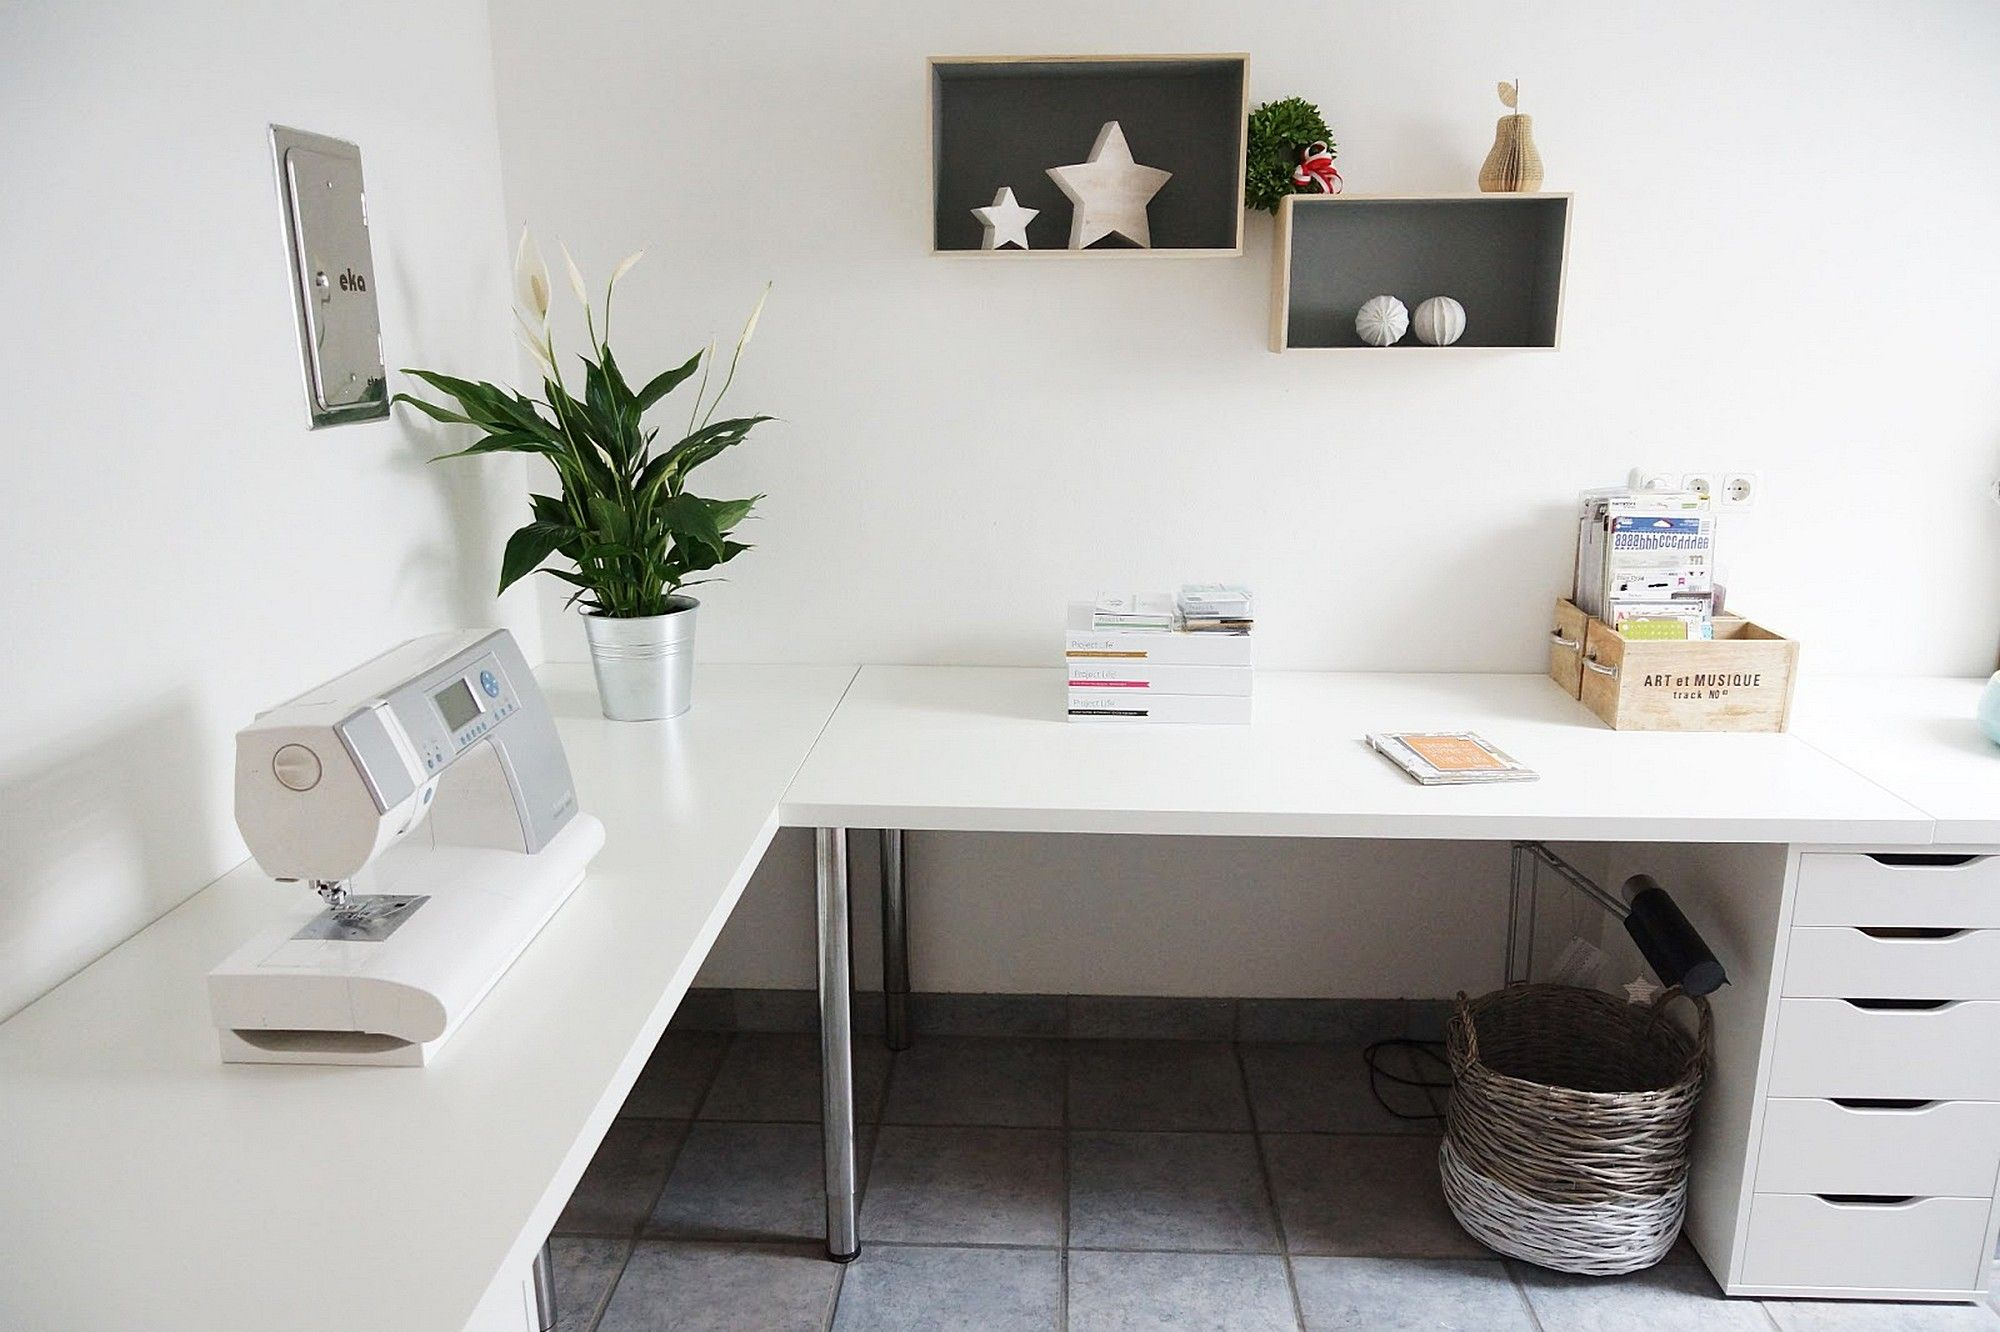 Charmant 15 Stunning DIY Corner Desk Designs To Inspire You #cornerdeskplansfree